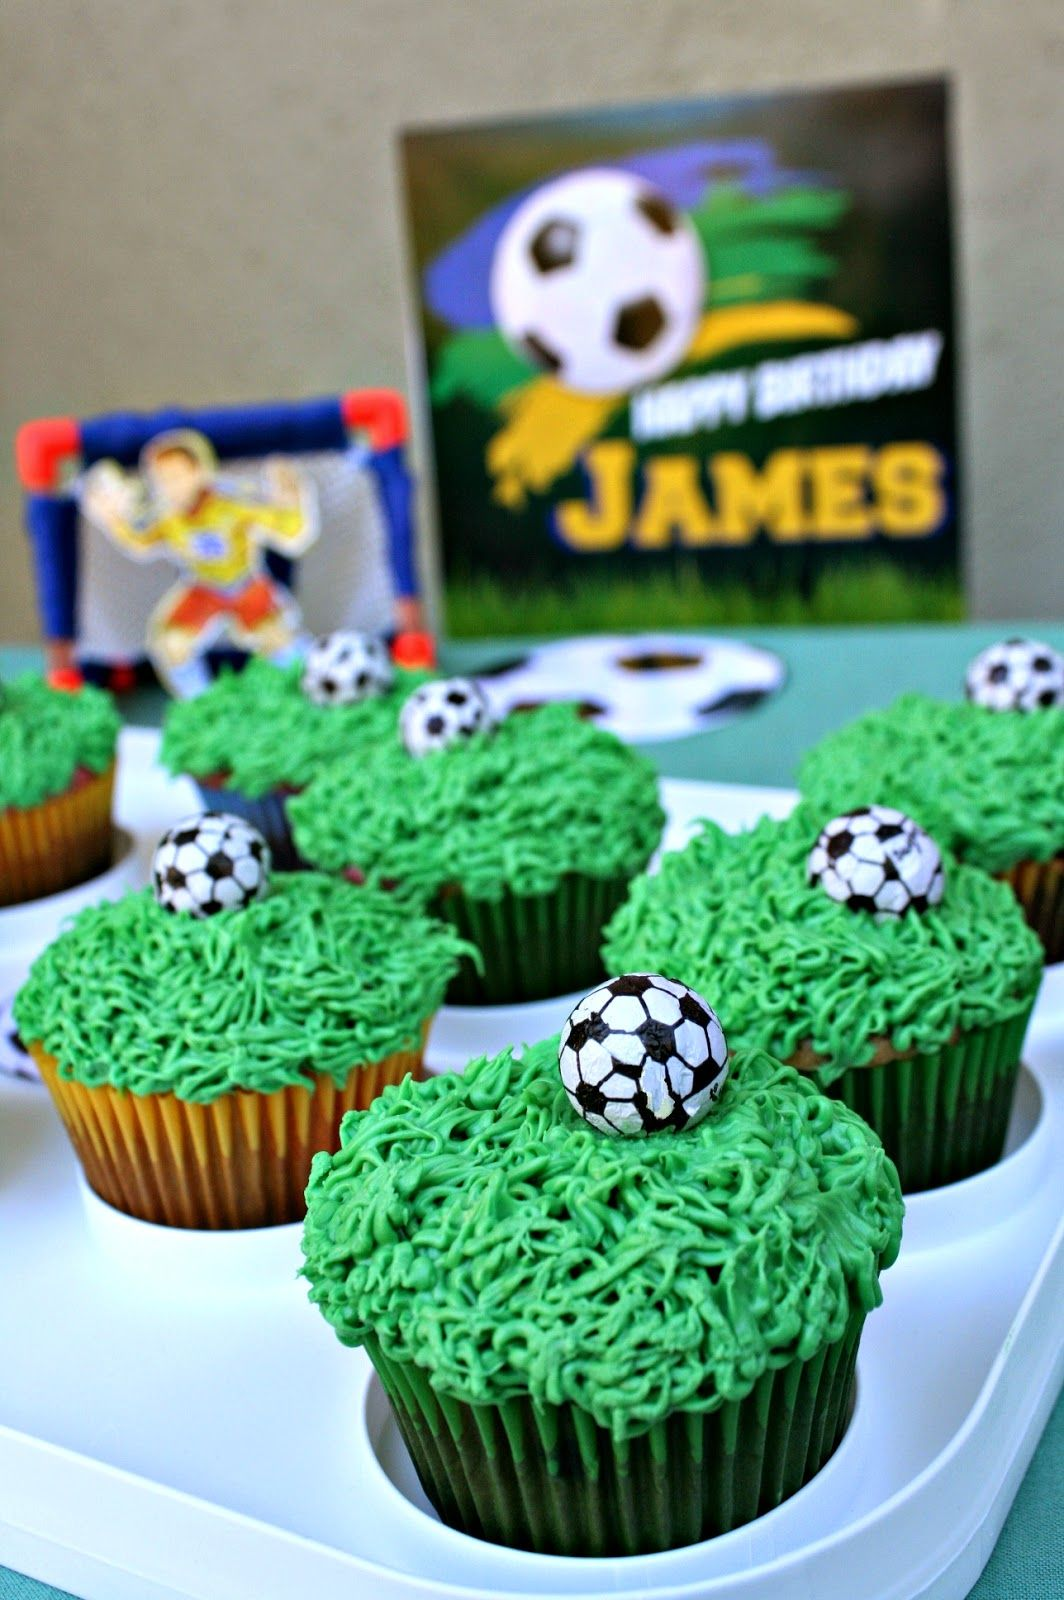 Soccer Cupcakes Piping Grass Icing Is So Easy Because Even If You Mess Up It Looks Great Soccer Cupcakes Cupcake Piping Buttercream Icing